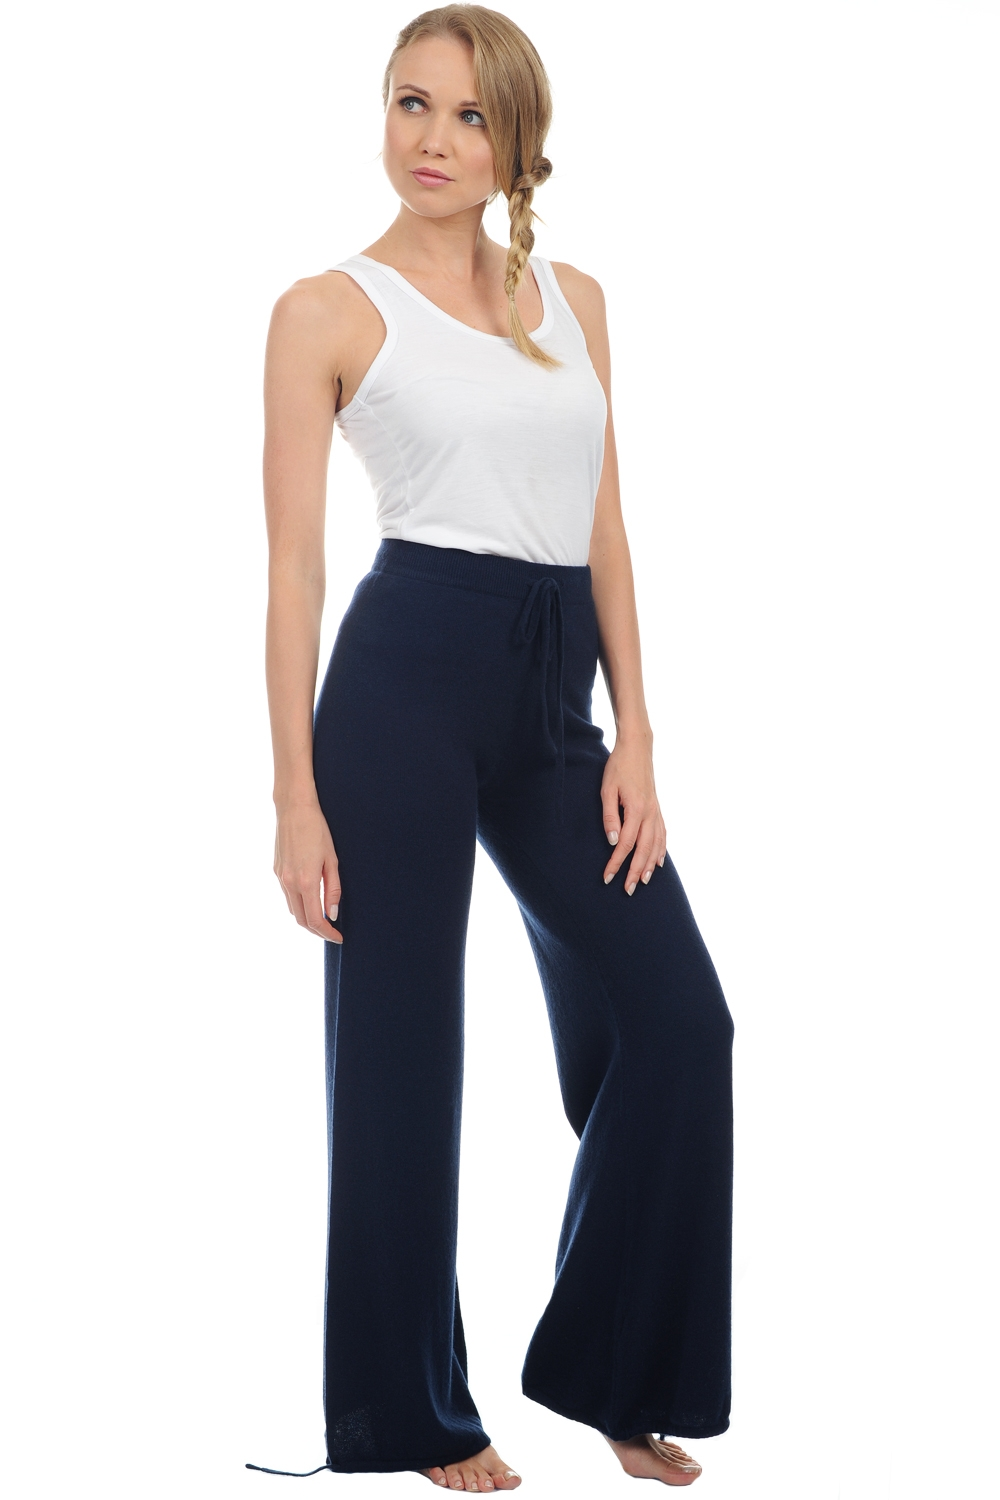 cashmere donna pantaloni  leggings heather blu notte xs